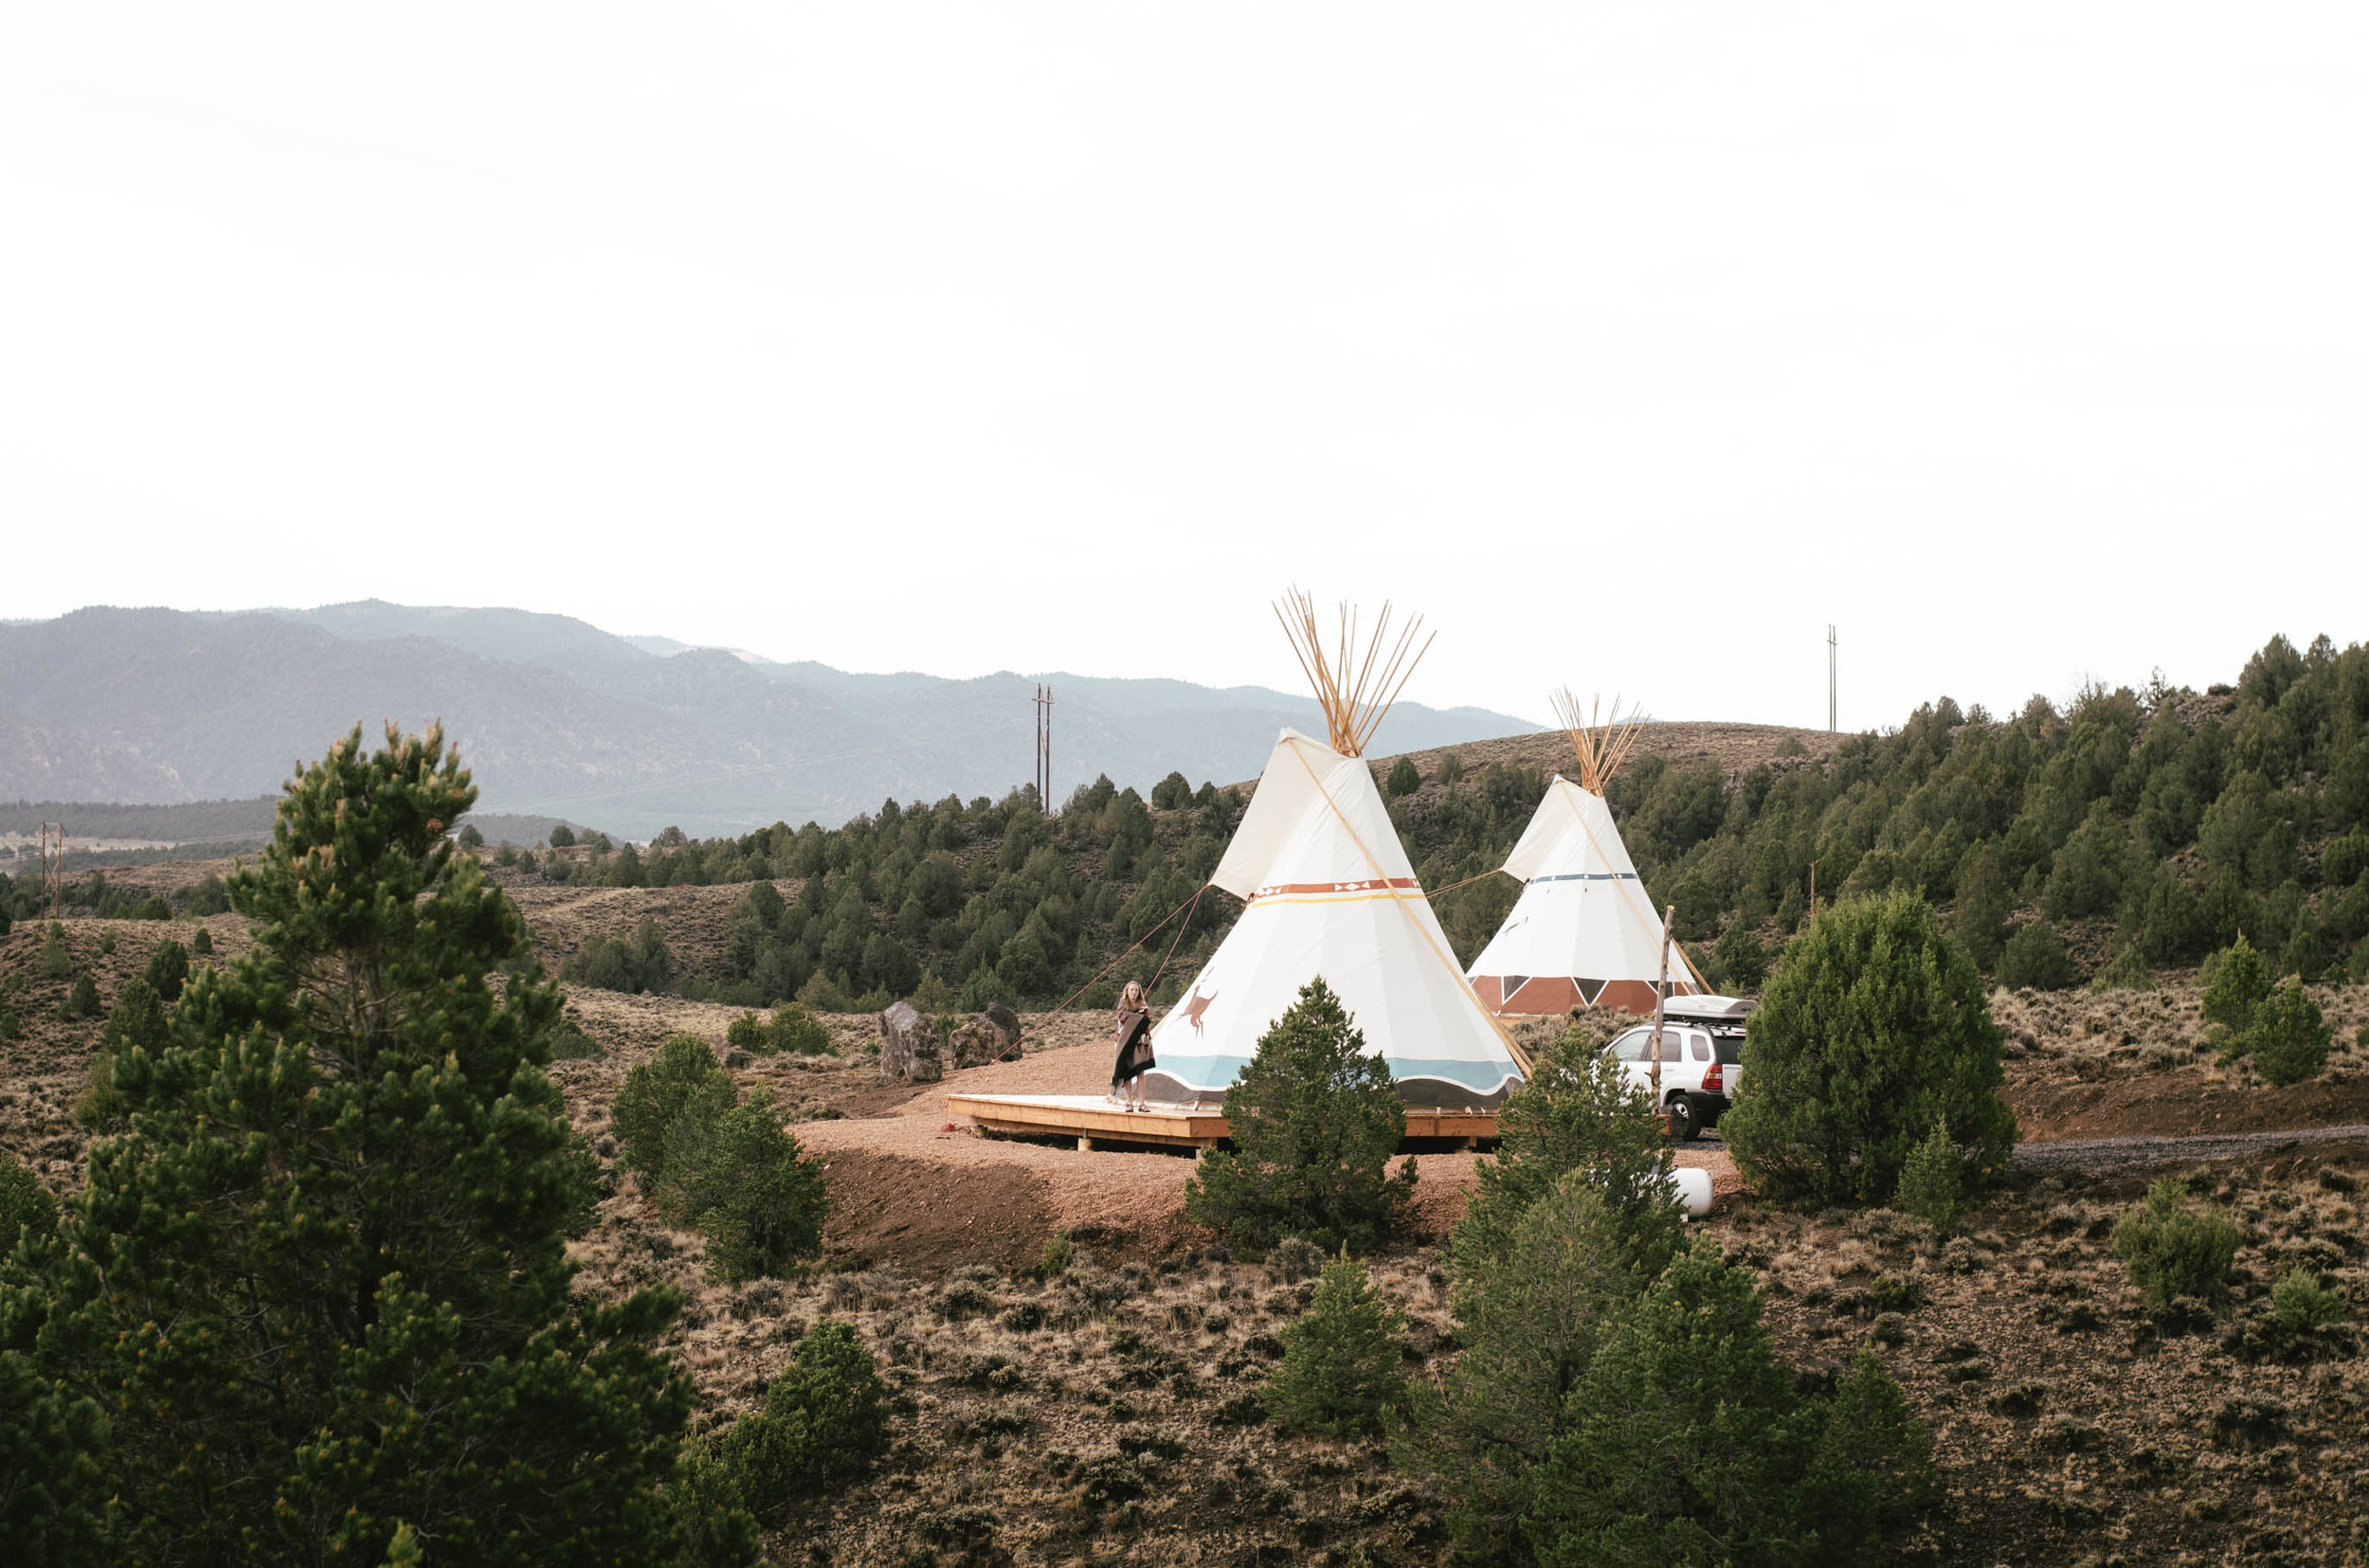 We planned two nights of tipi camping into our Utah itinerary